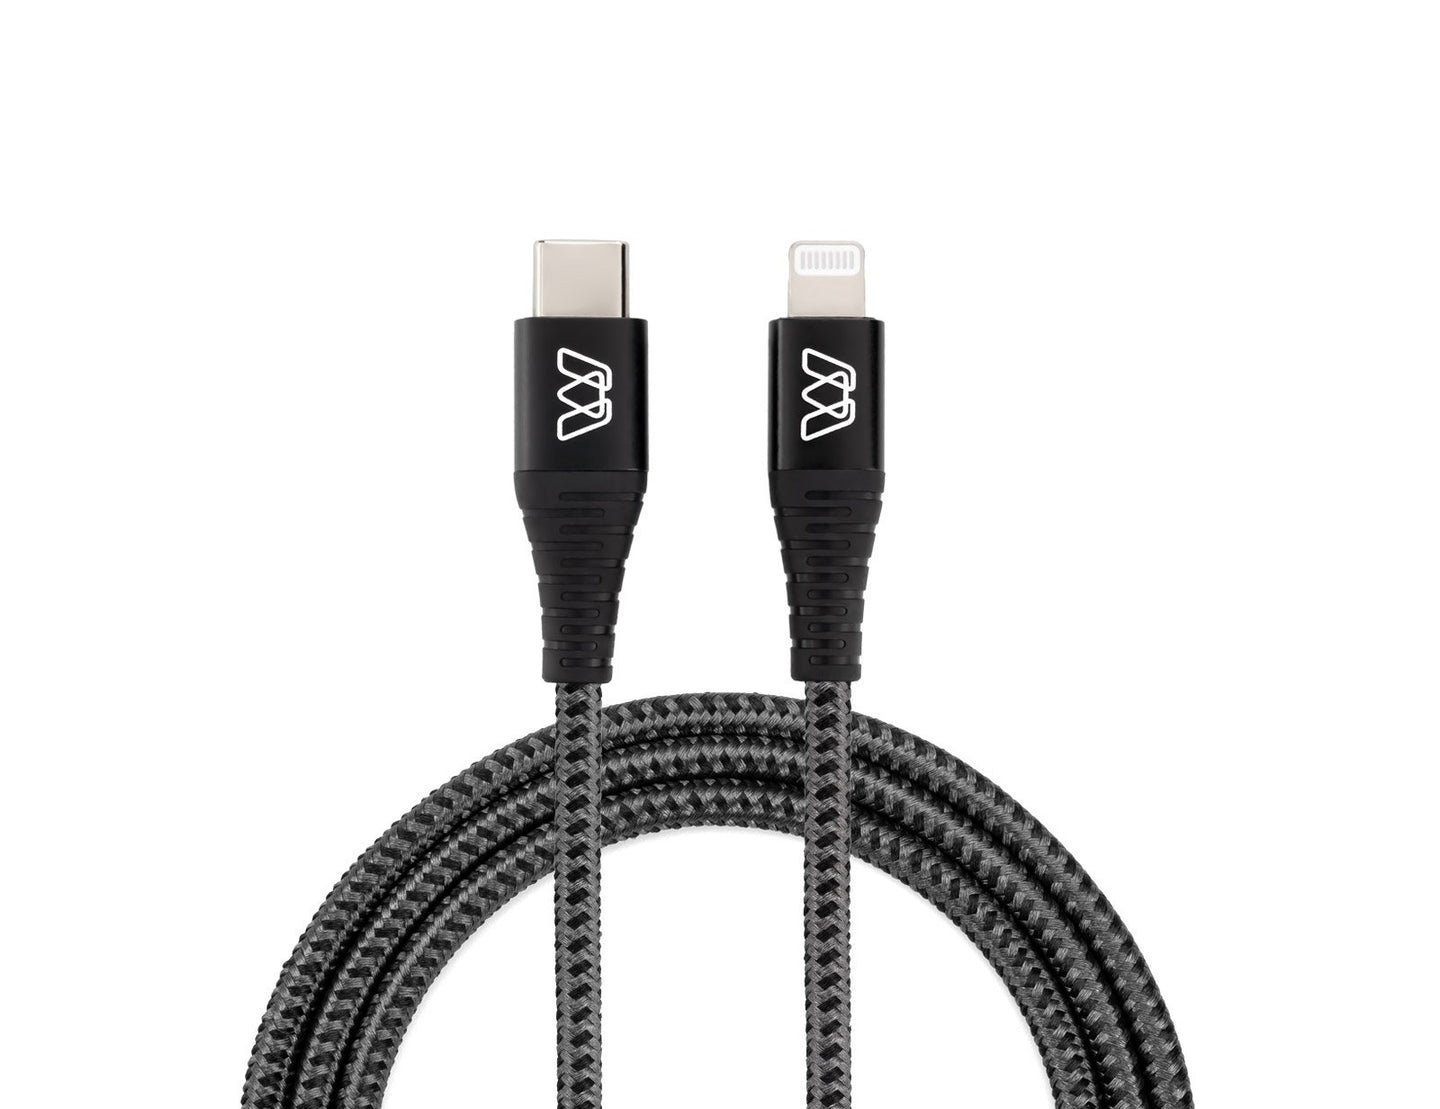 MOS Strike USB-C to Lightning Fast Charge Cable for iPhone or iPad